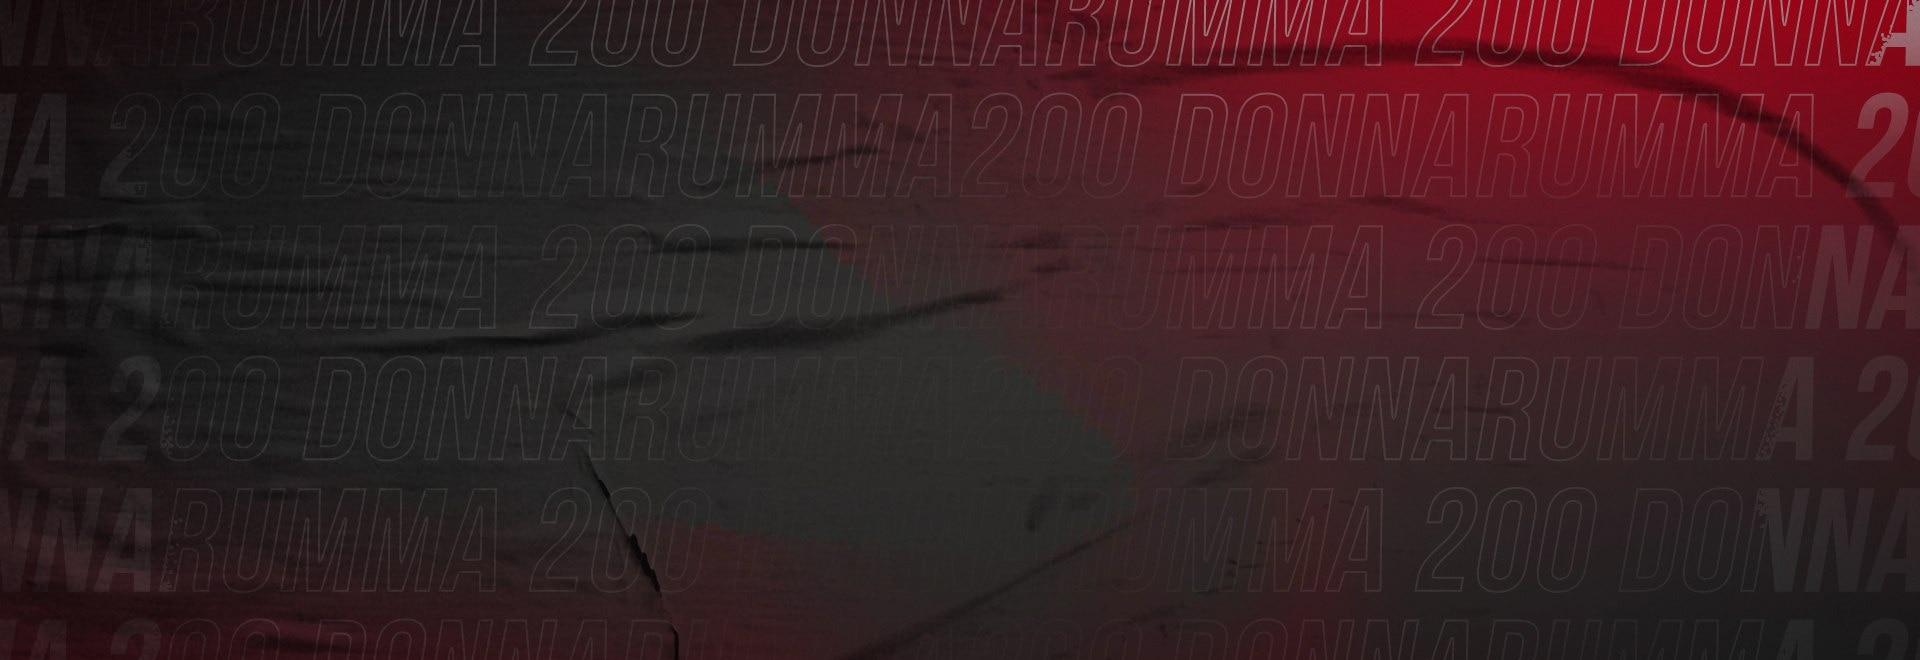 Donnarumma 200 in rossonero